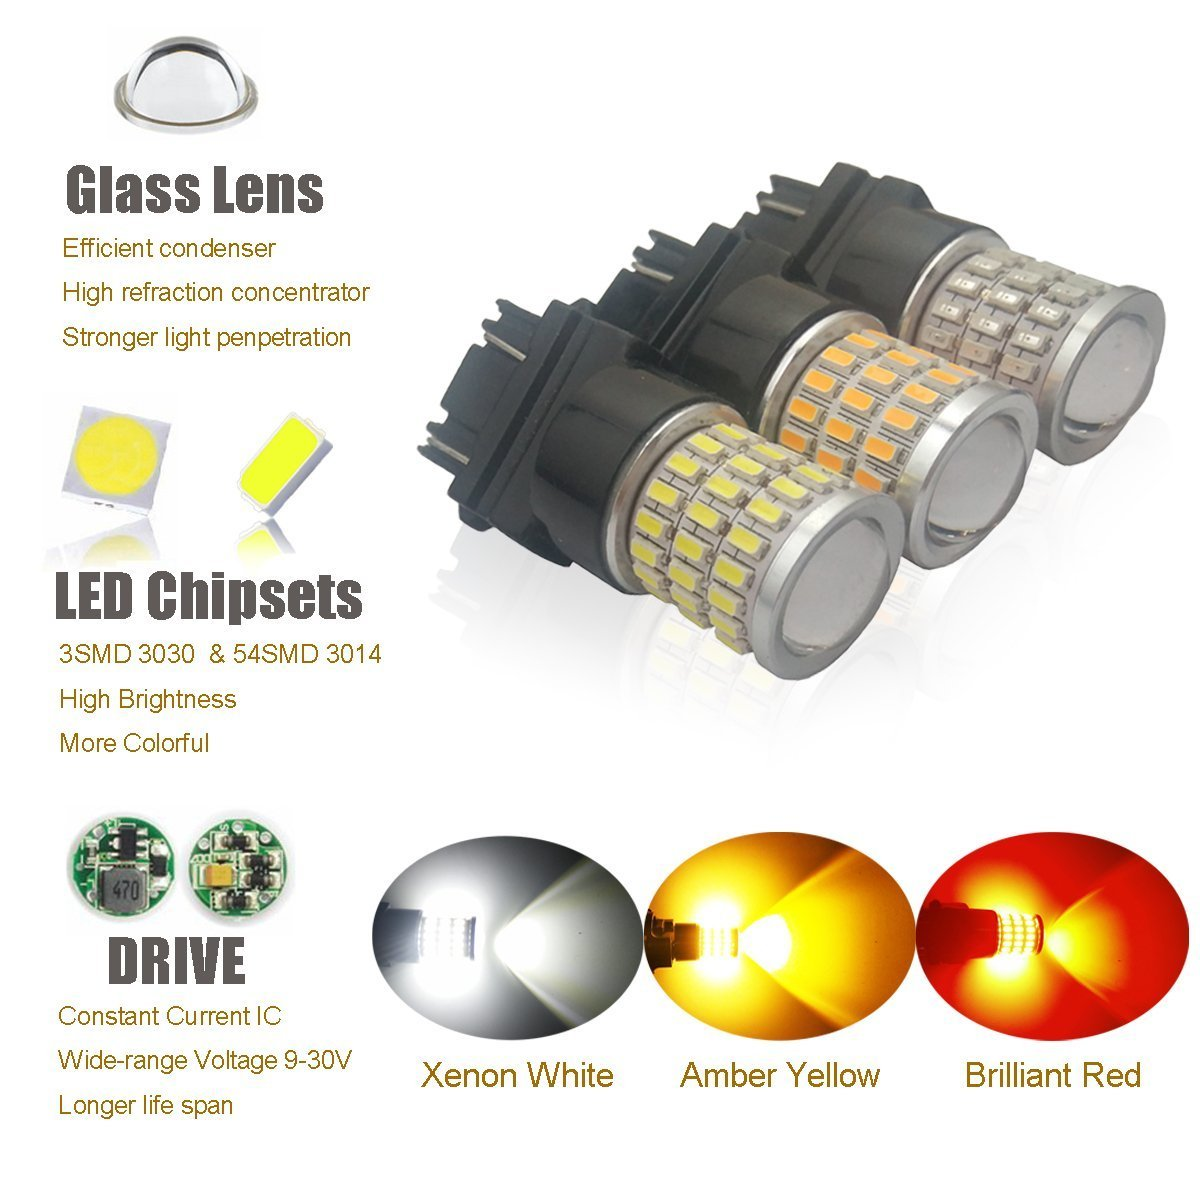 iBrightstar Newest 9-30V Super Bright Low Power Dual Brightness 3156 3157 3056 3057 LED Bulbs with Projector Replacement for Tail Brake Lights,Brilliant Red by iBrightstar (Image #7)